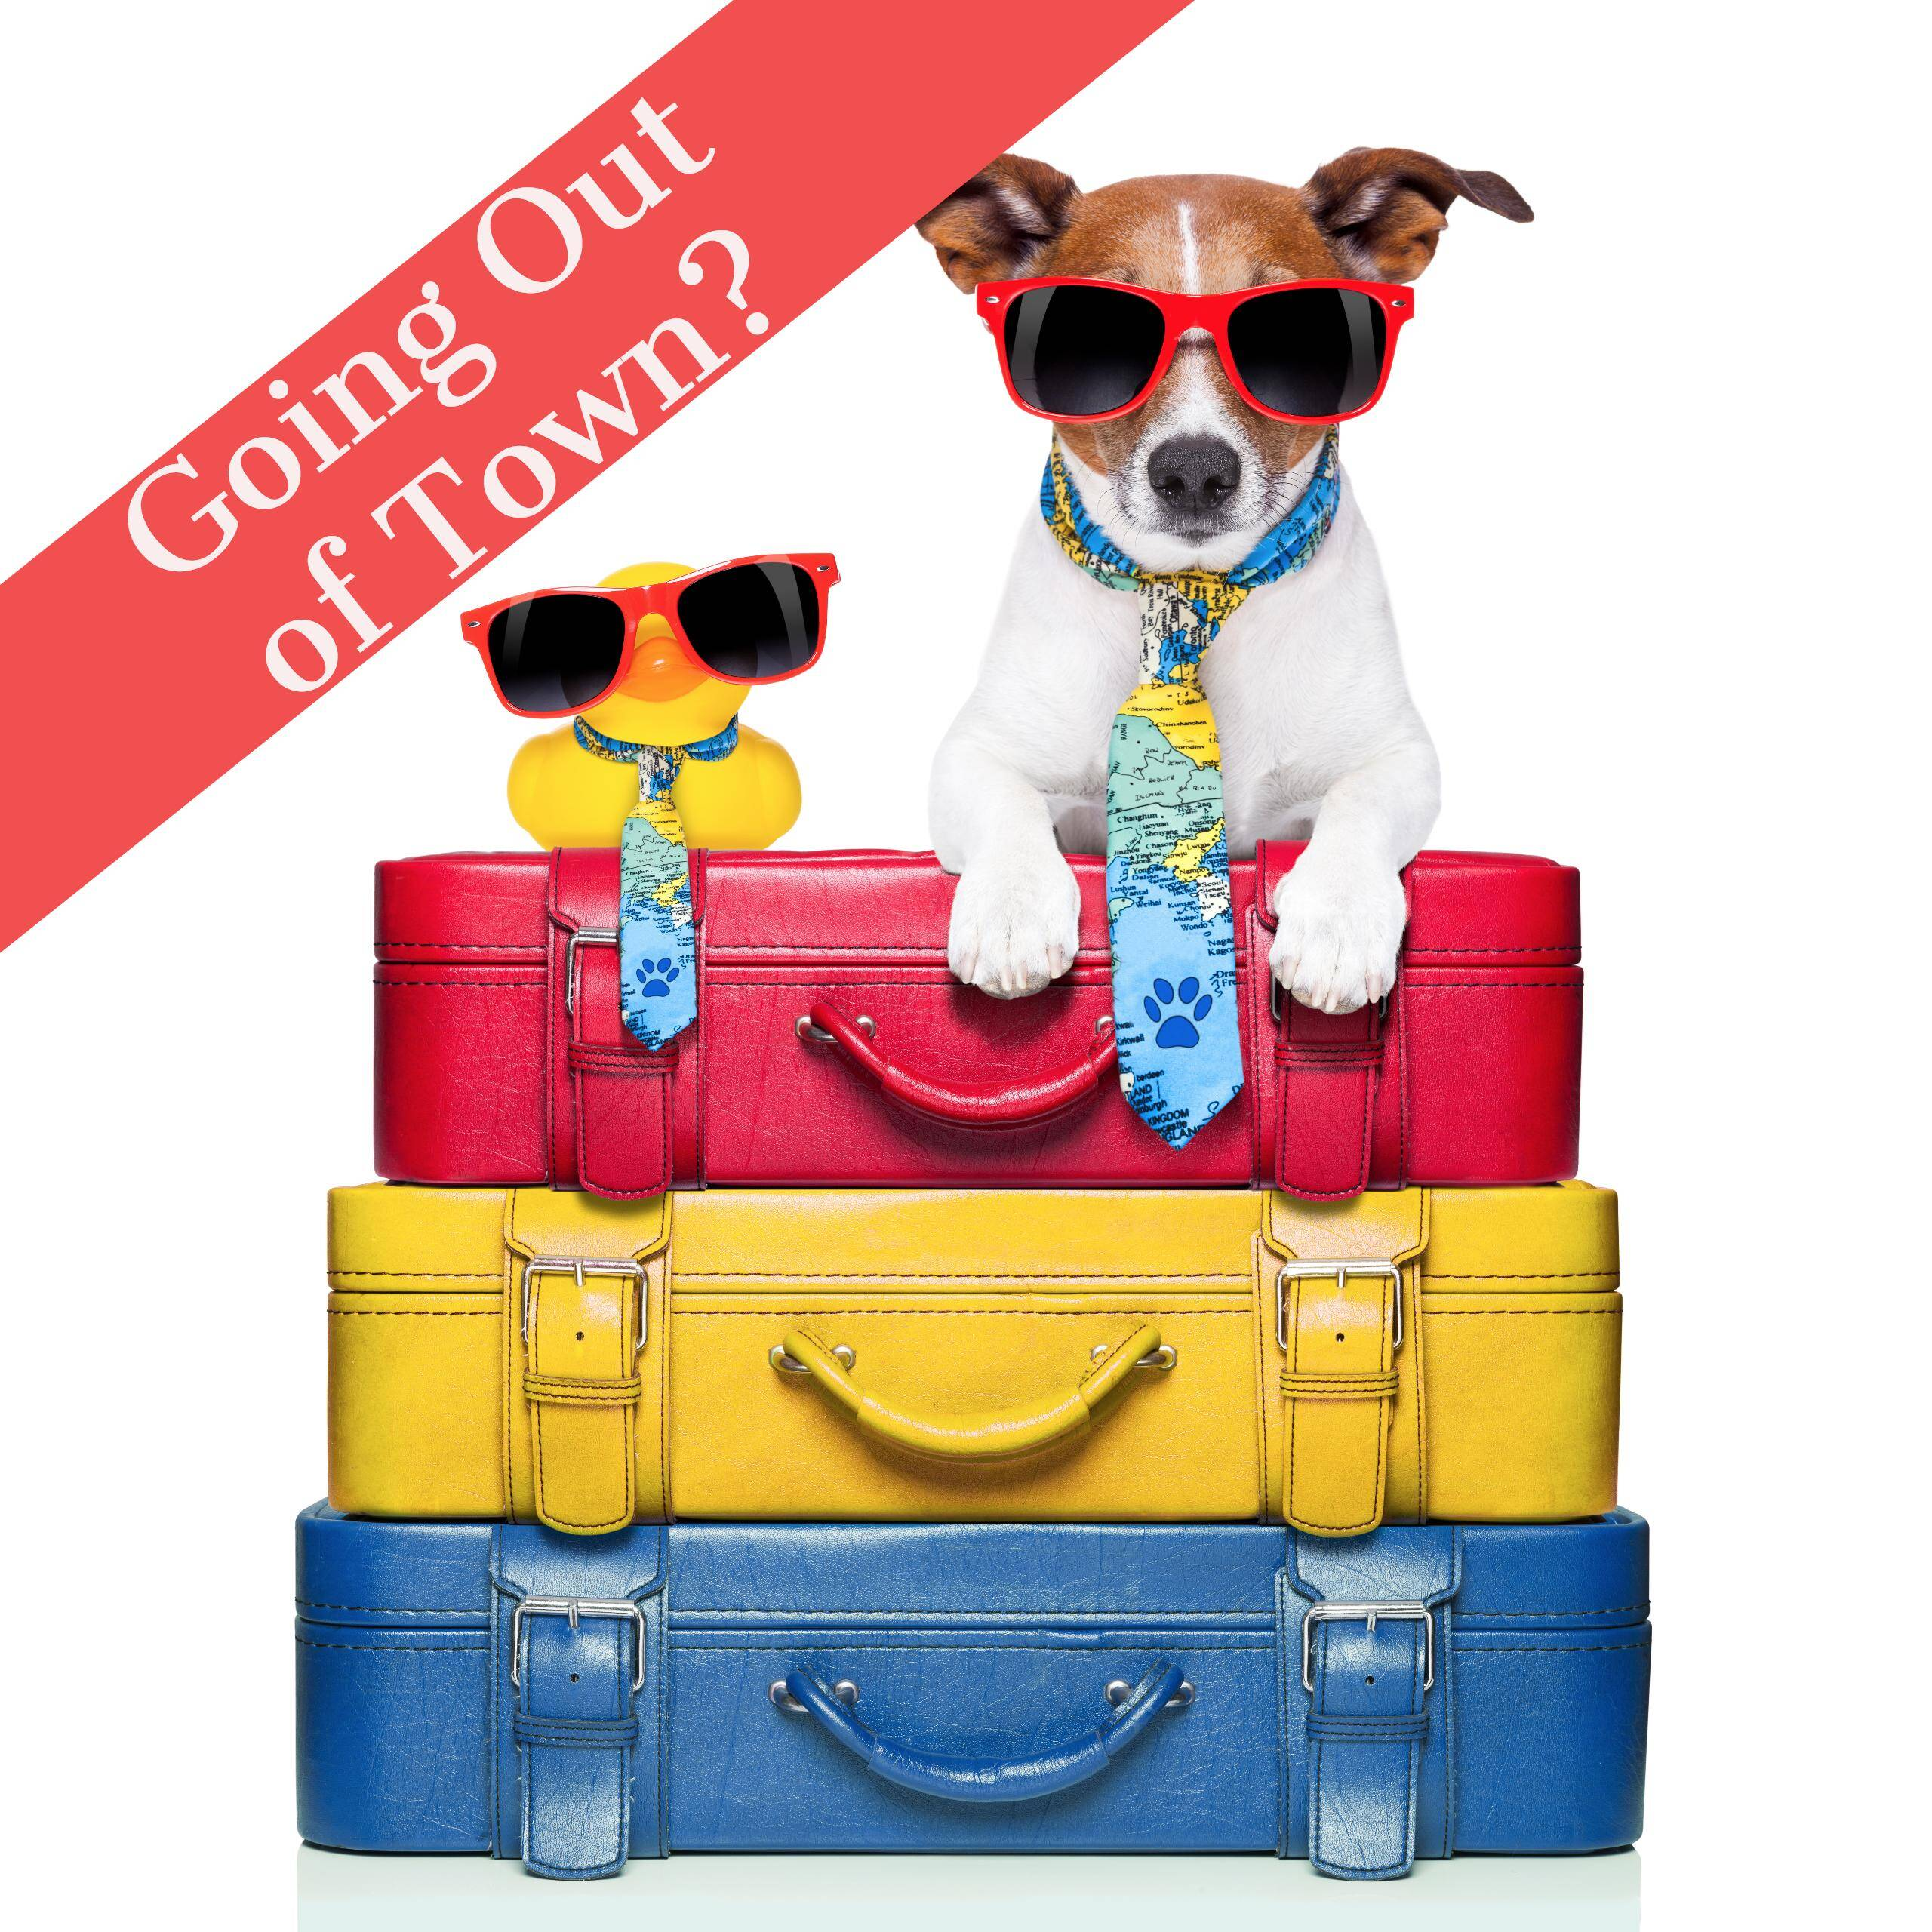 Best Dog Training and Boarding